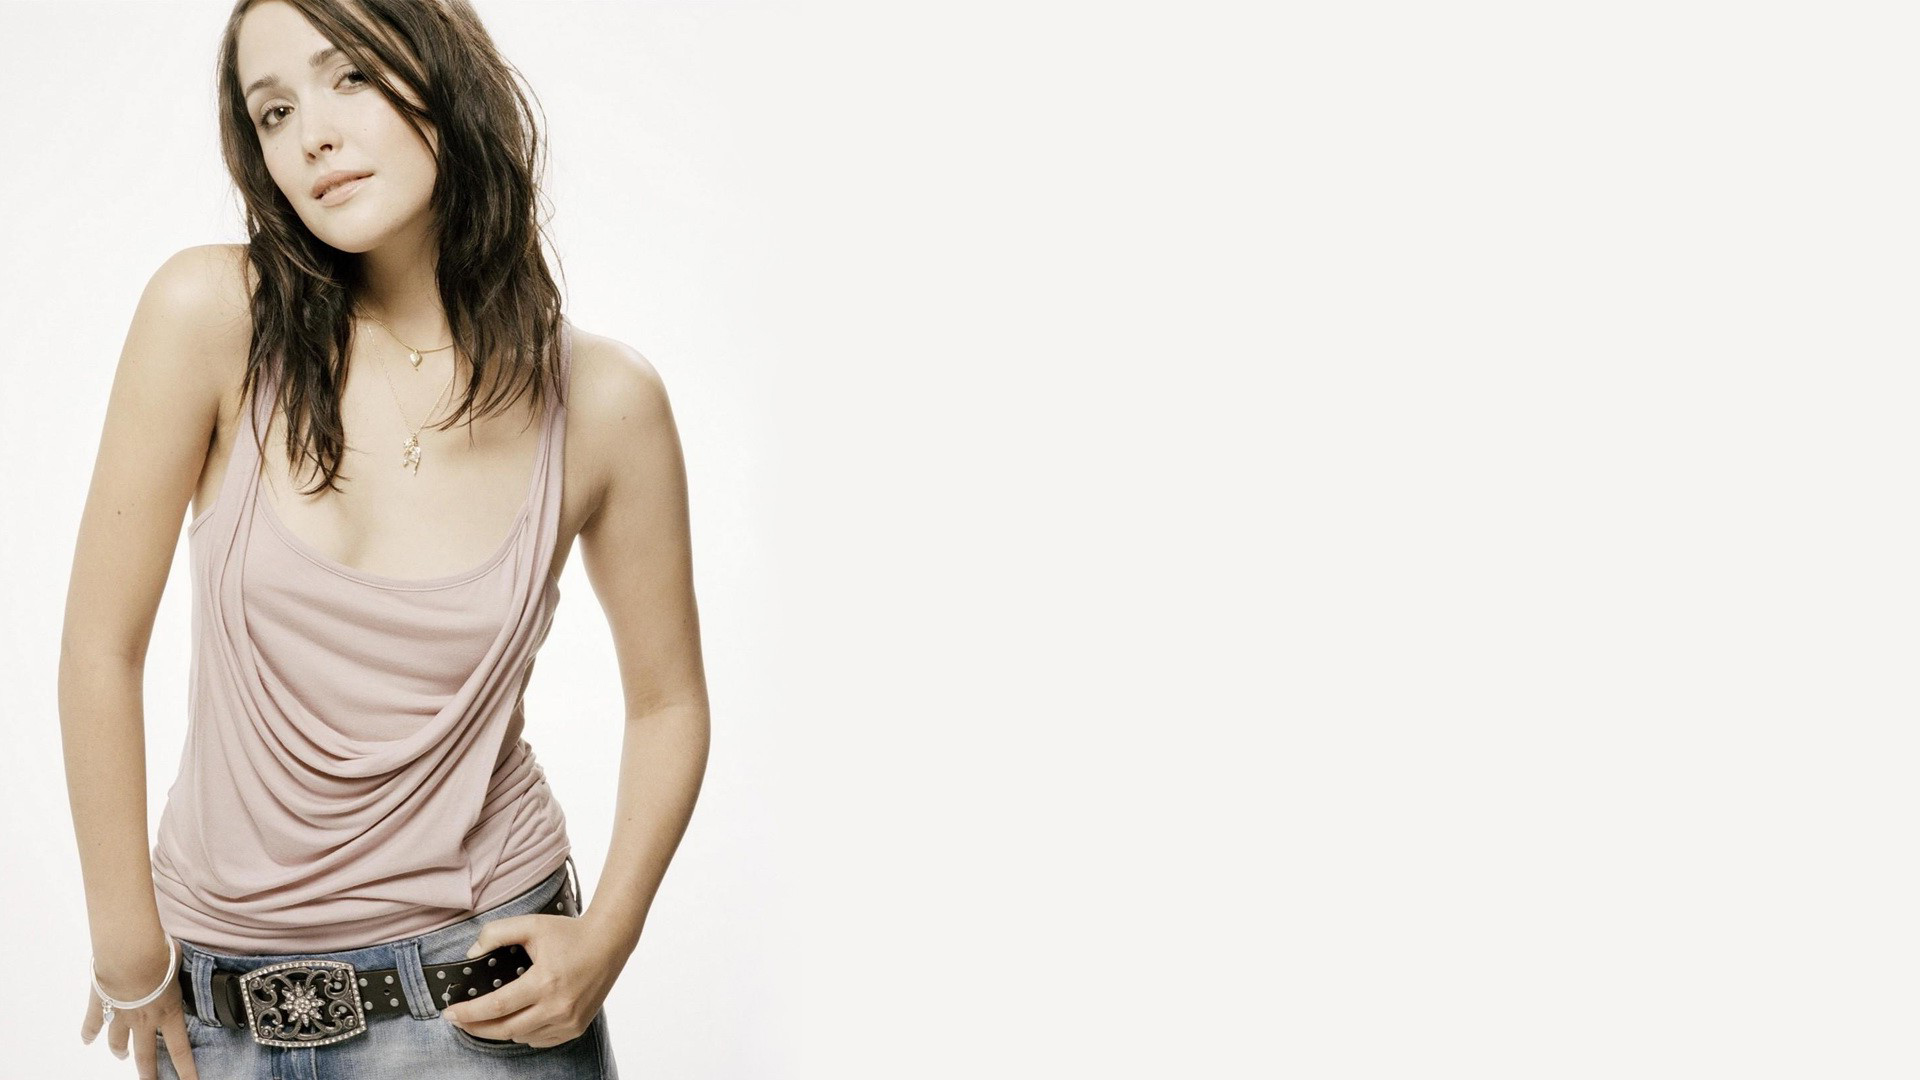 1920x1080 - Rose Byrne Wallpapers 13